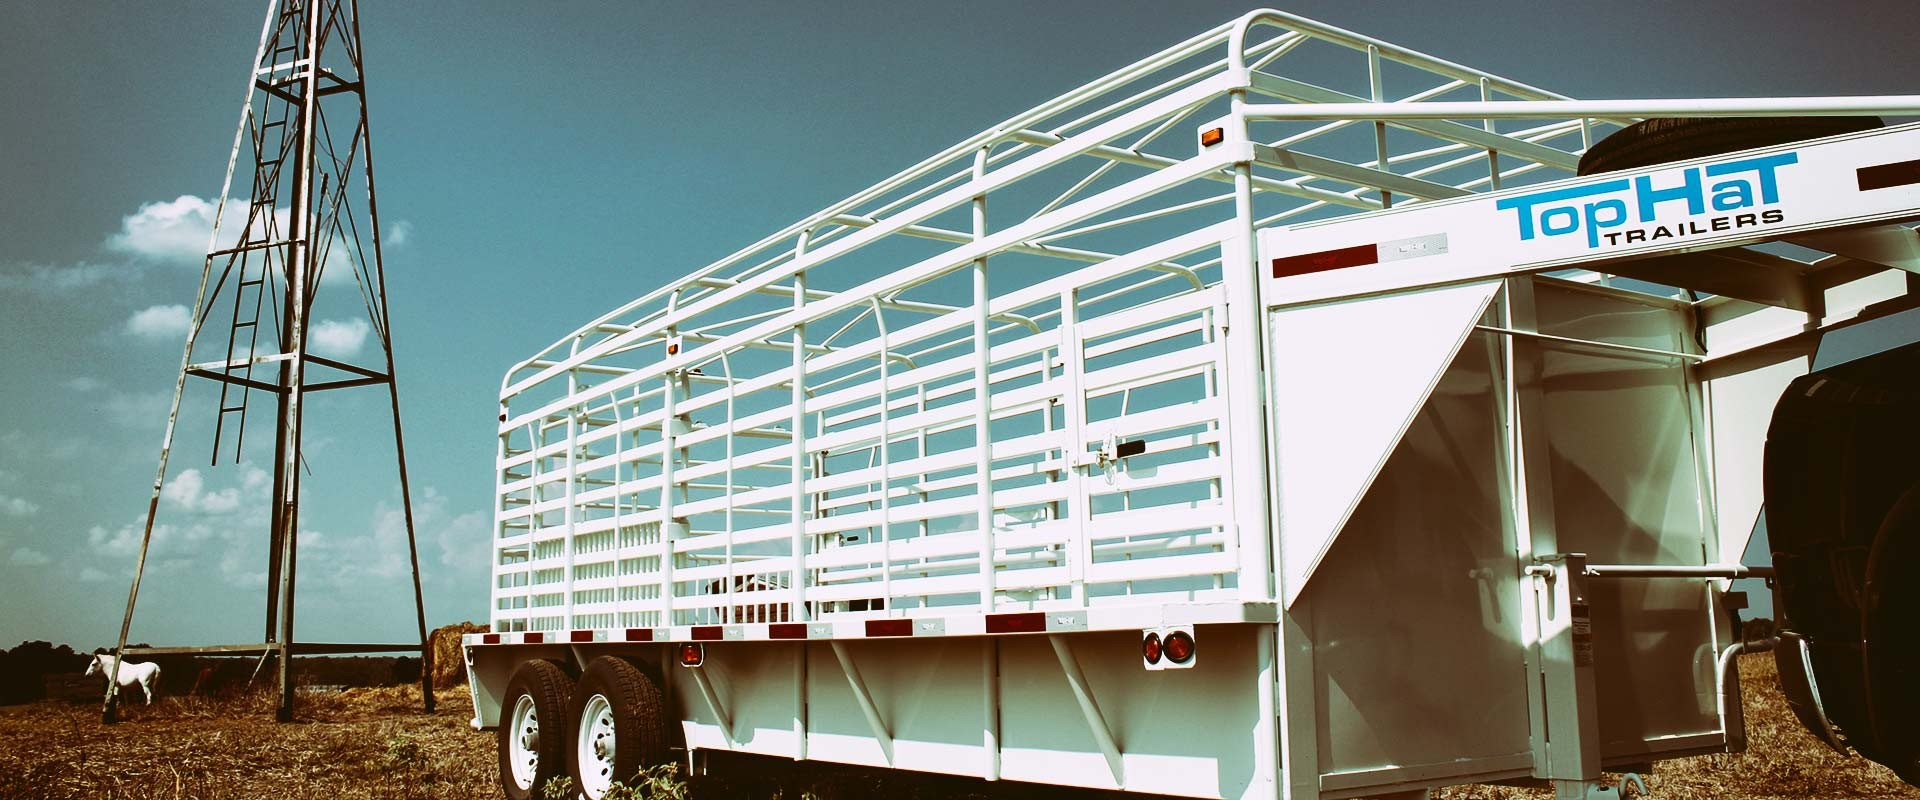 Top Hat Trailers Wiring Diagram Library Double Axle For Trailer Single Tandem Utility East Texas